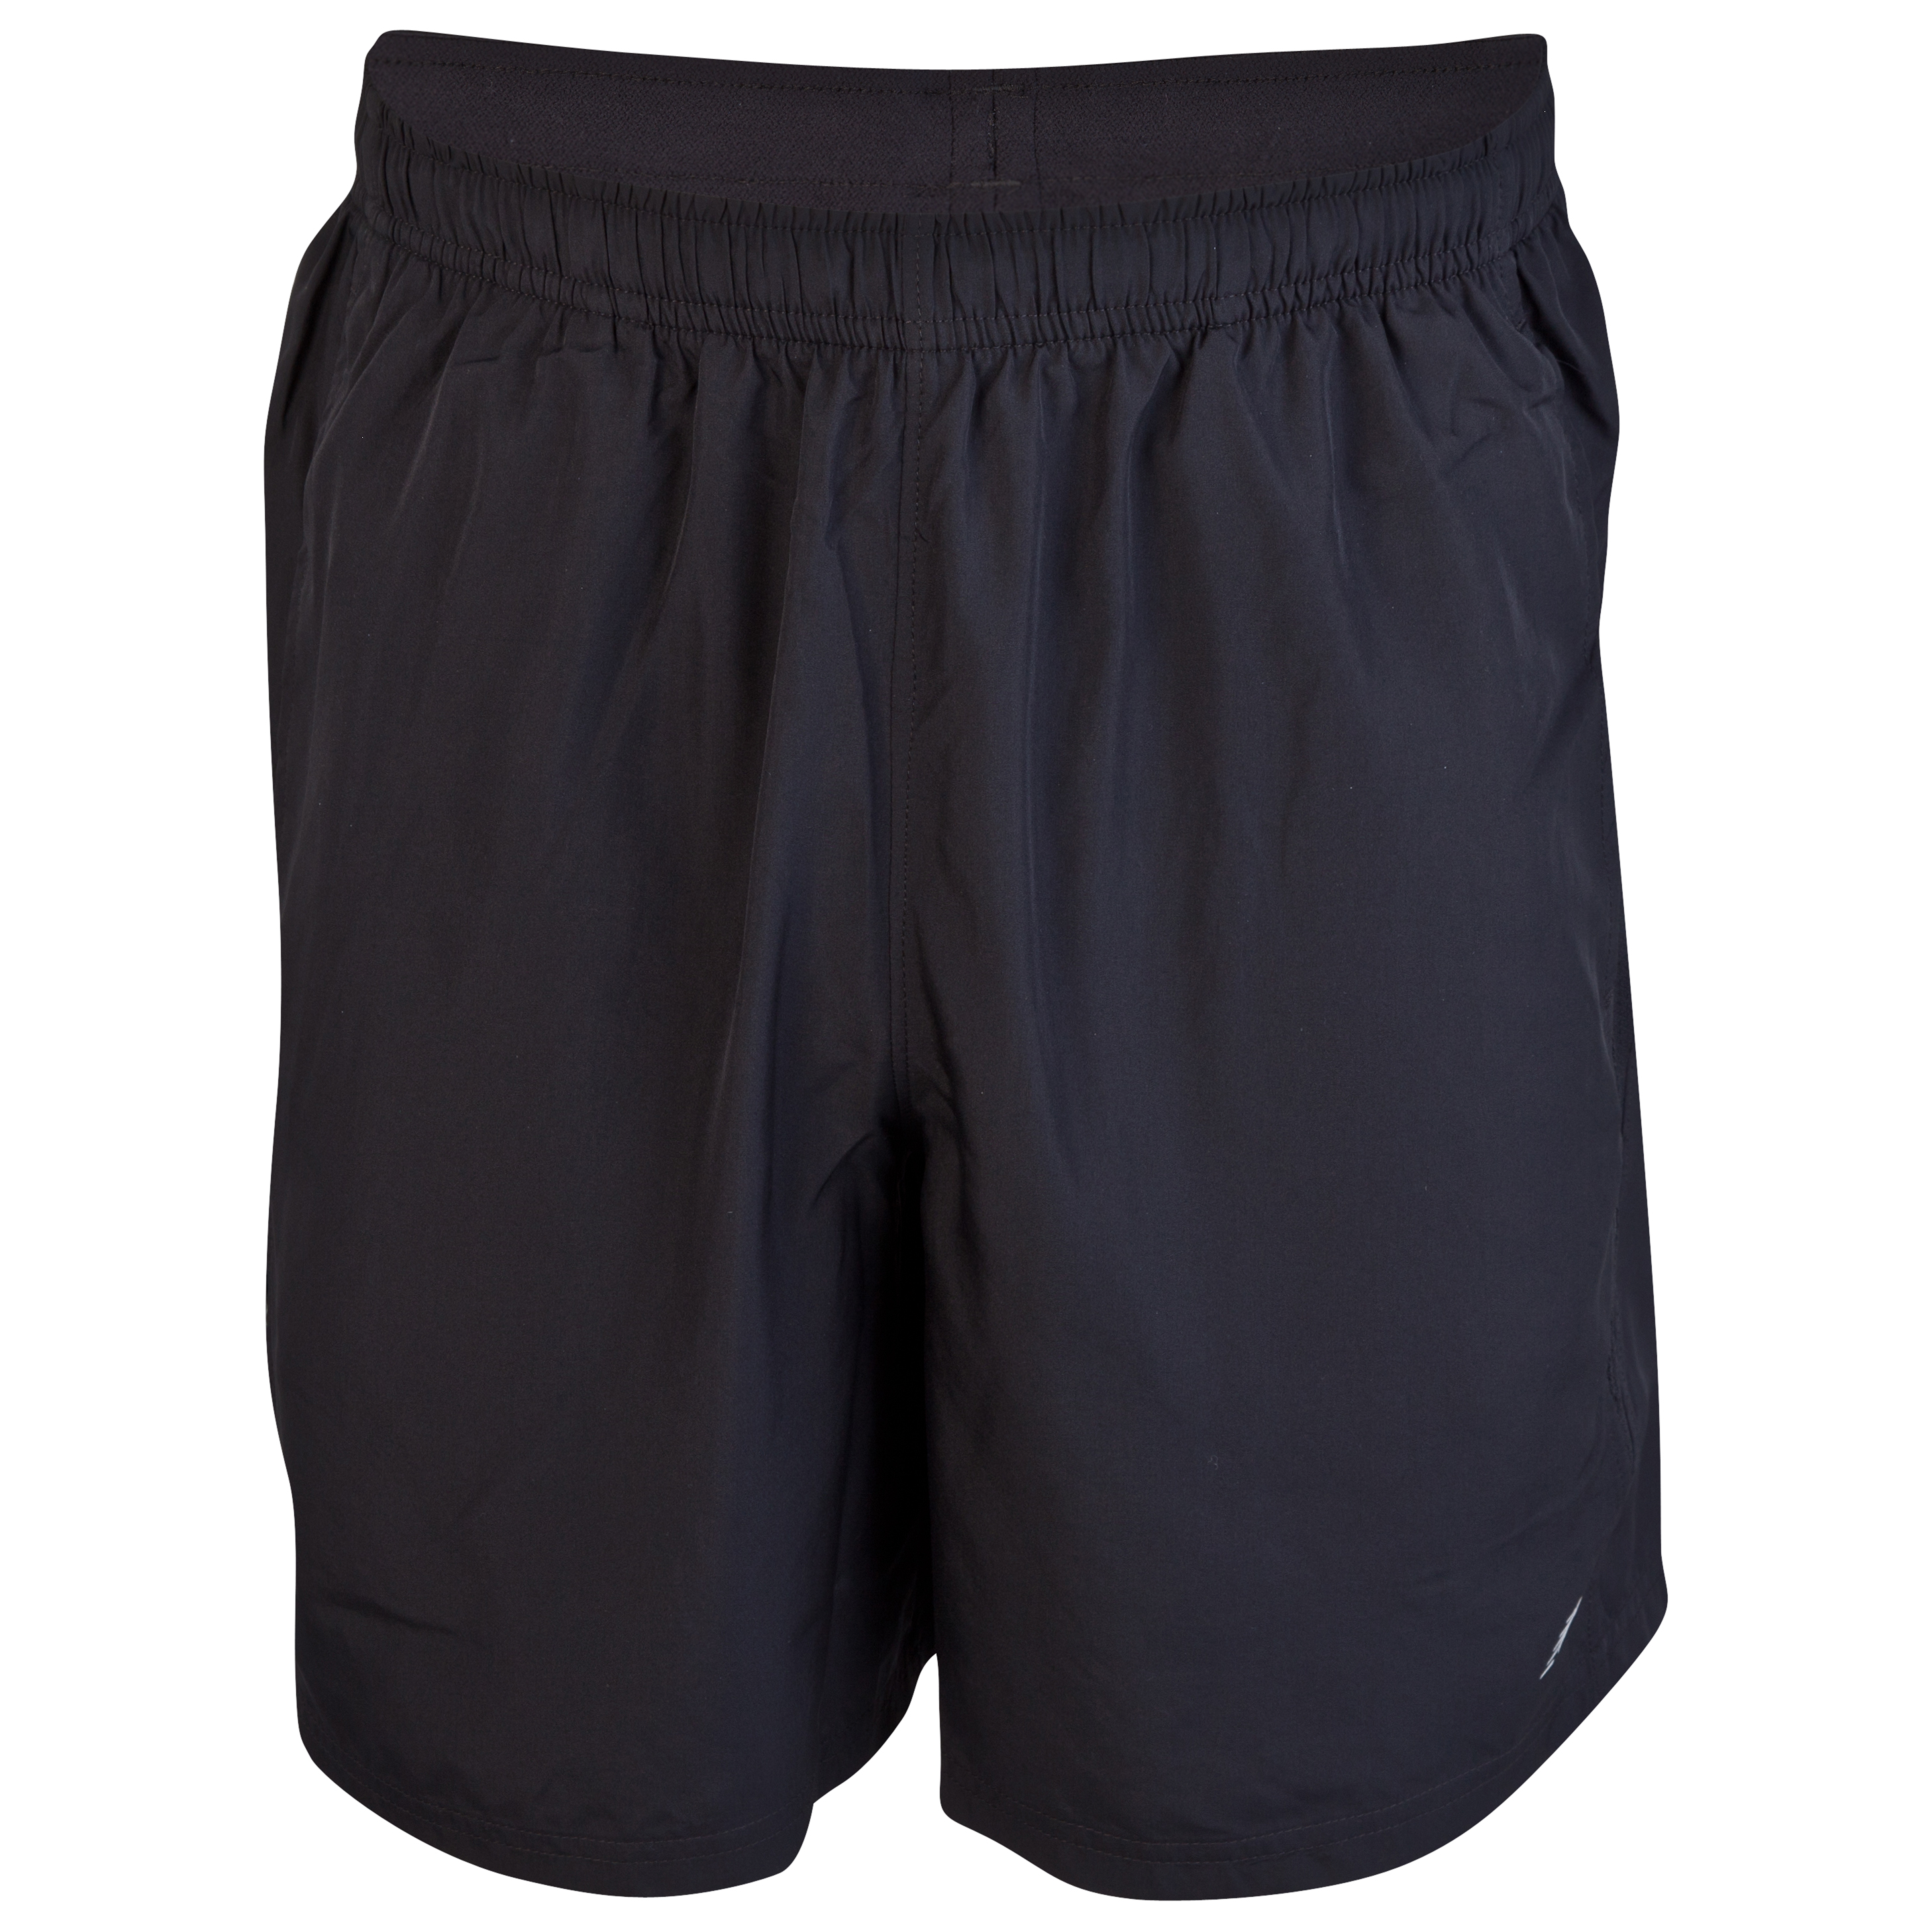 New Balance 7in Tempo Short - Black